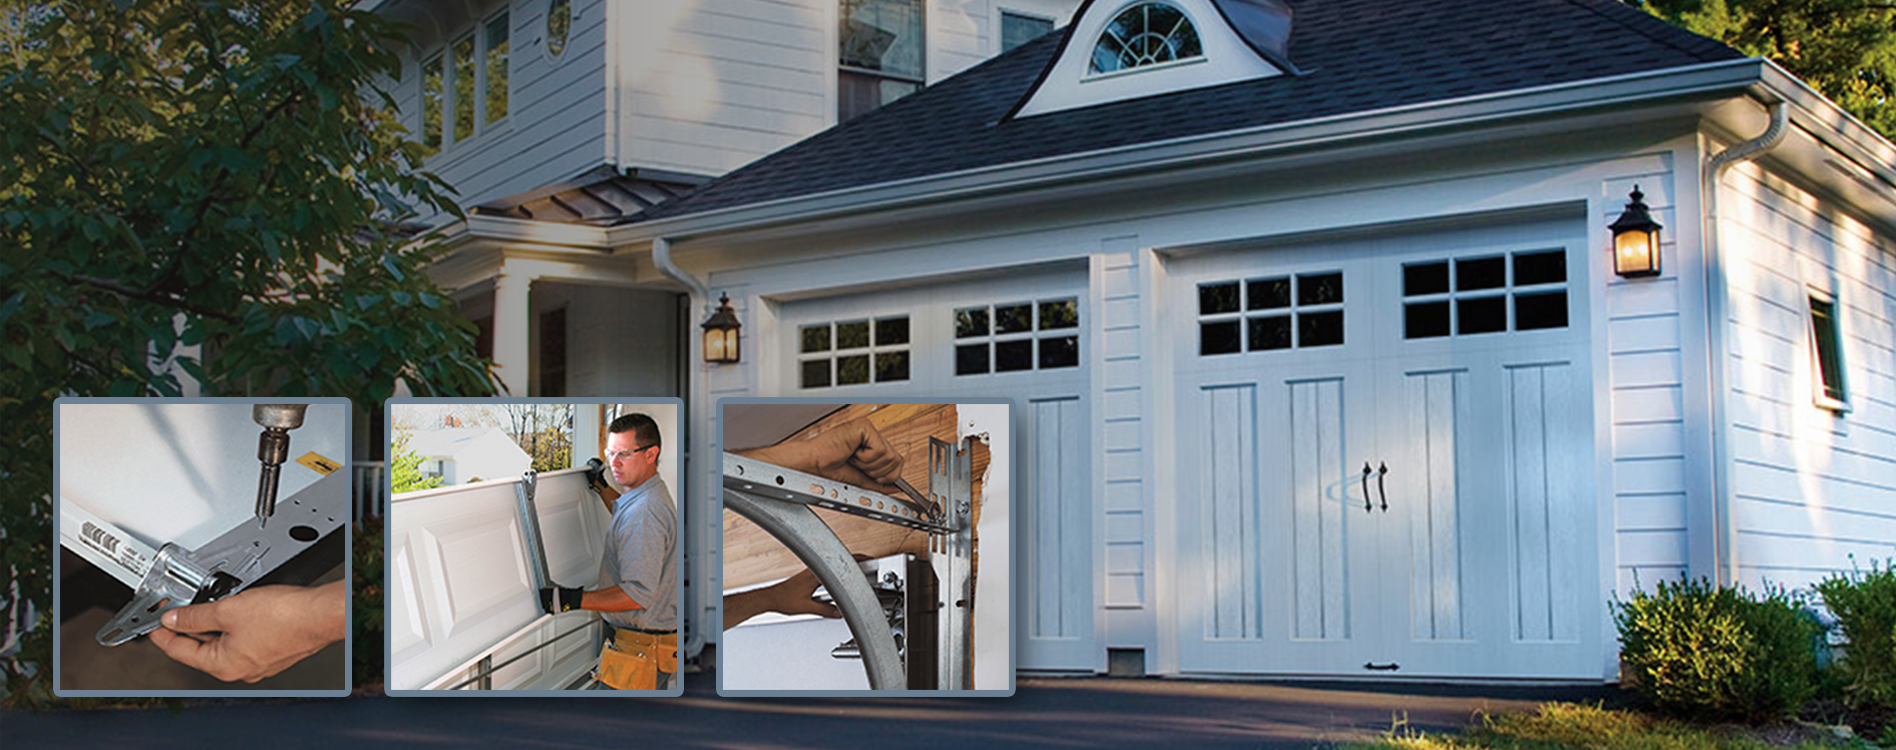 Call Today For Same Day Garage Door Service From An Experienced Technician Dial At 214 915 0384 Garage Garage Doors Garage Service Door Single Garage Door